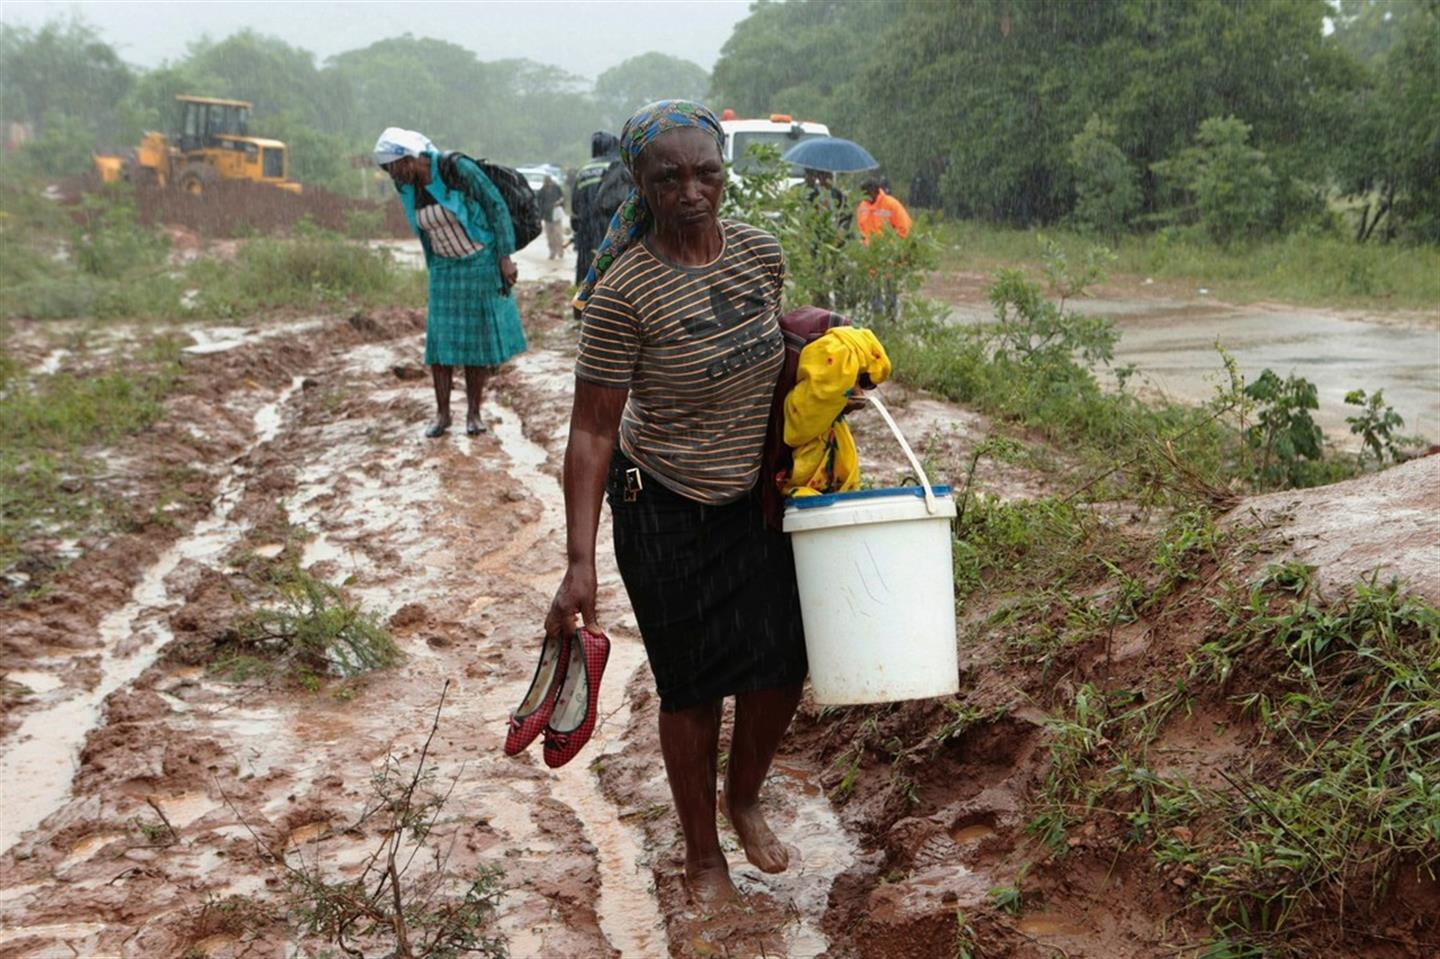 Noodsituatie Mozambique, Zimbabwe en Malawi door cyclonen Idai en Kenneth